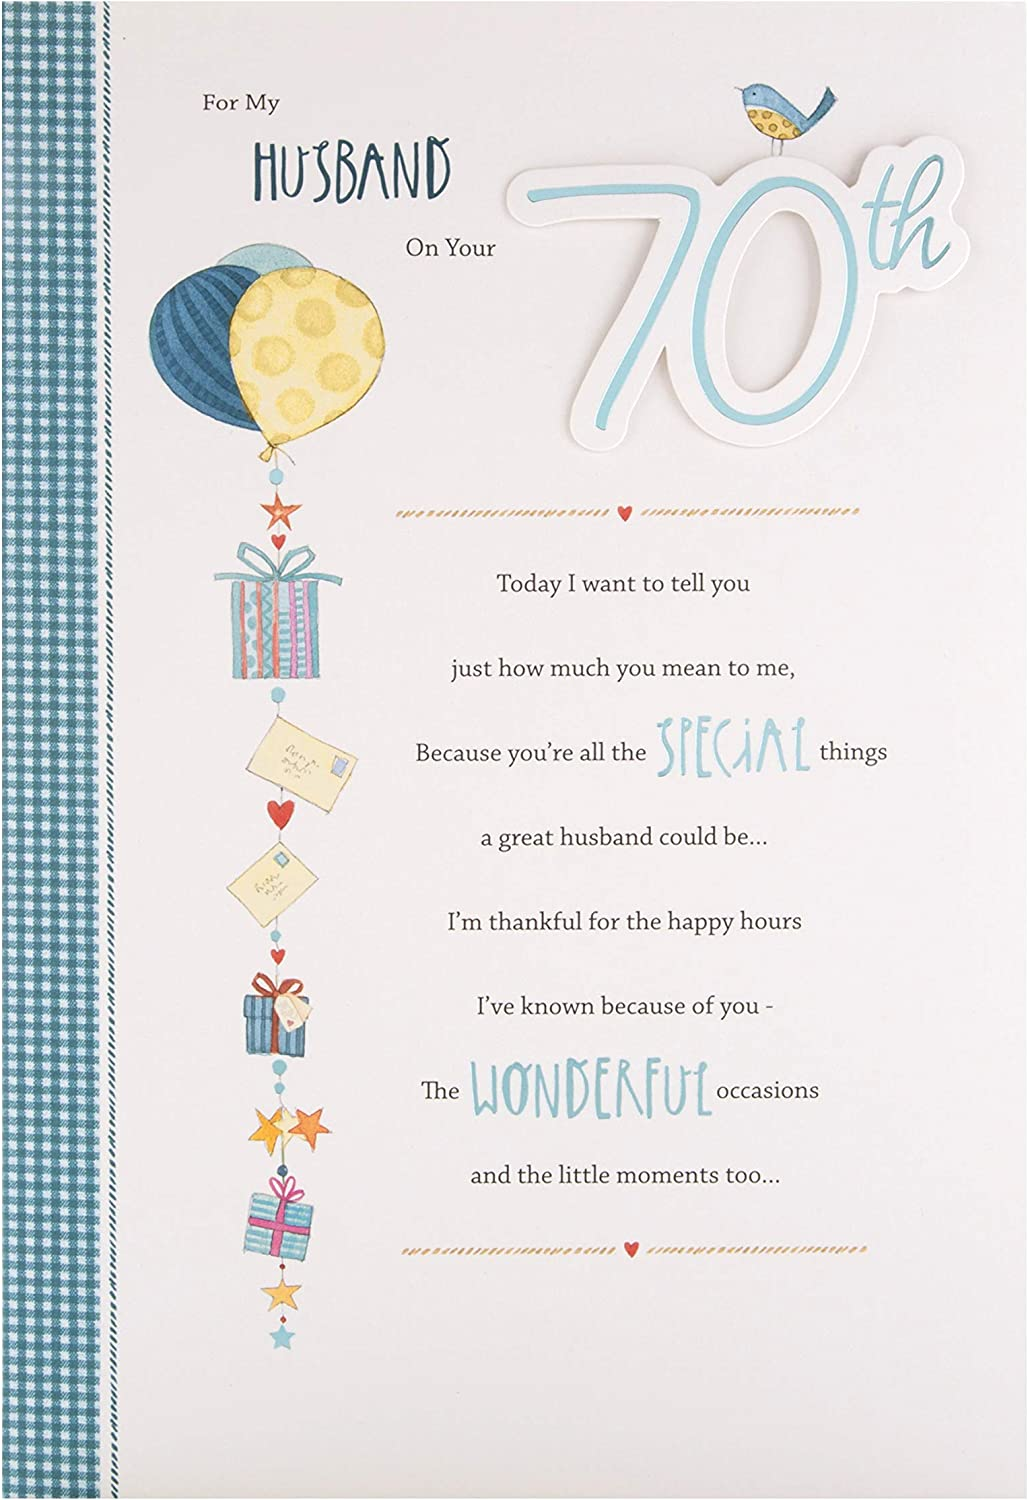 6TH Birthday Card for Husband from Hallmark - with Sentimental Verse